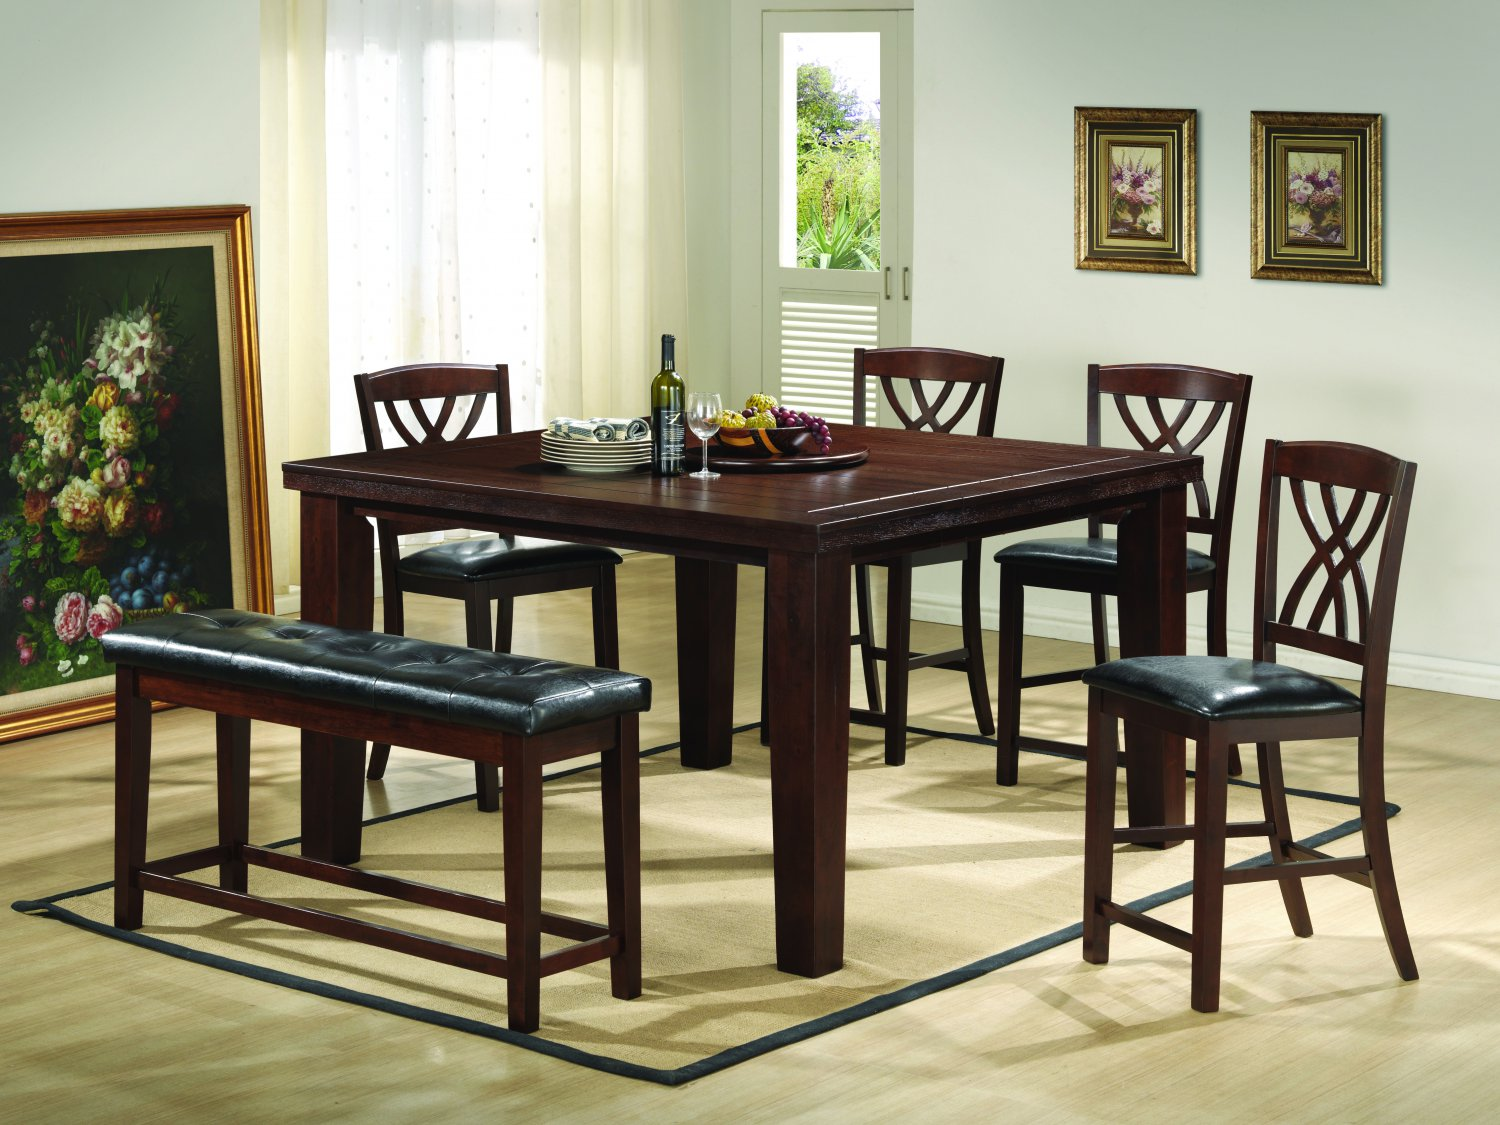 2216 6 Pcs Counter Height Set With Extension Walnut